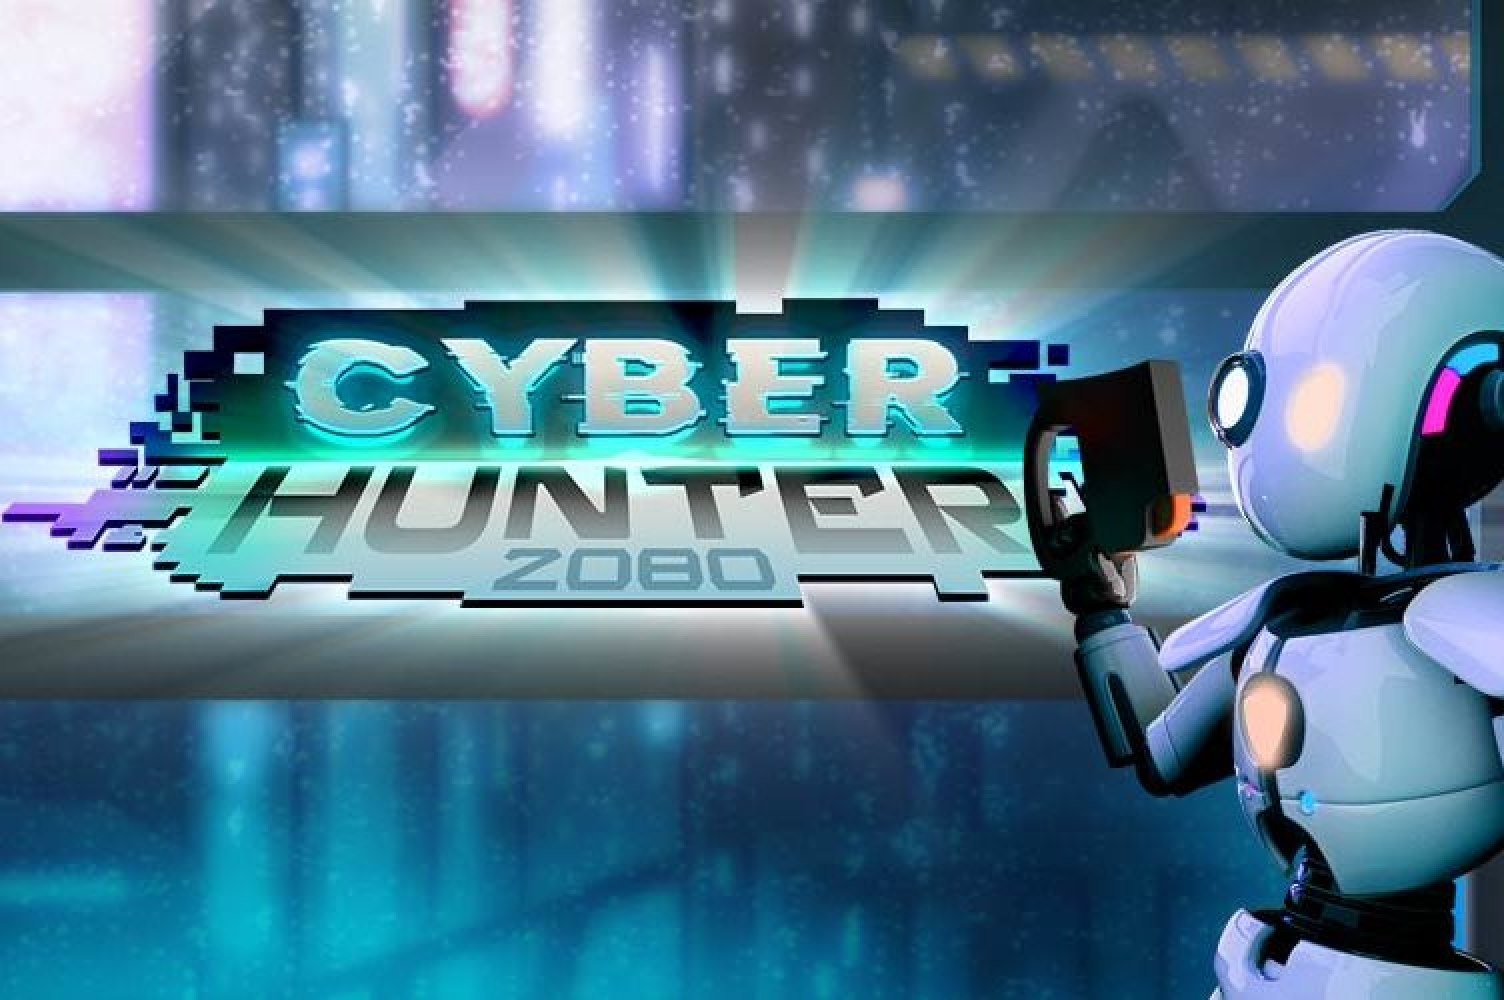 The Cyber Hunter 2080 Online Slot Demo Game by FunFair